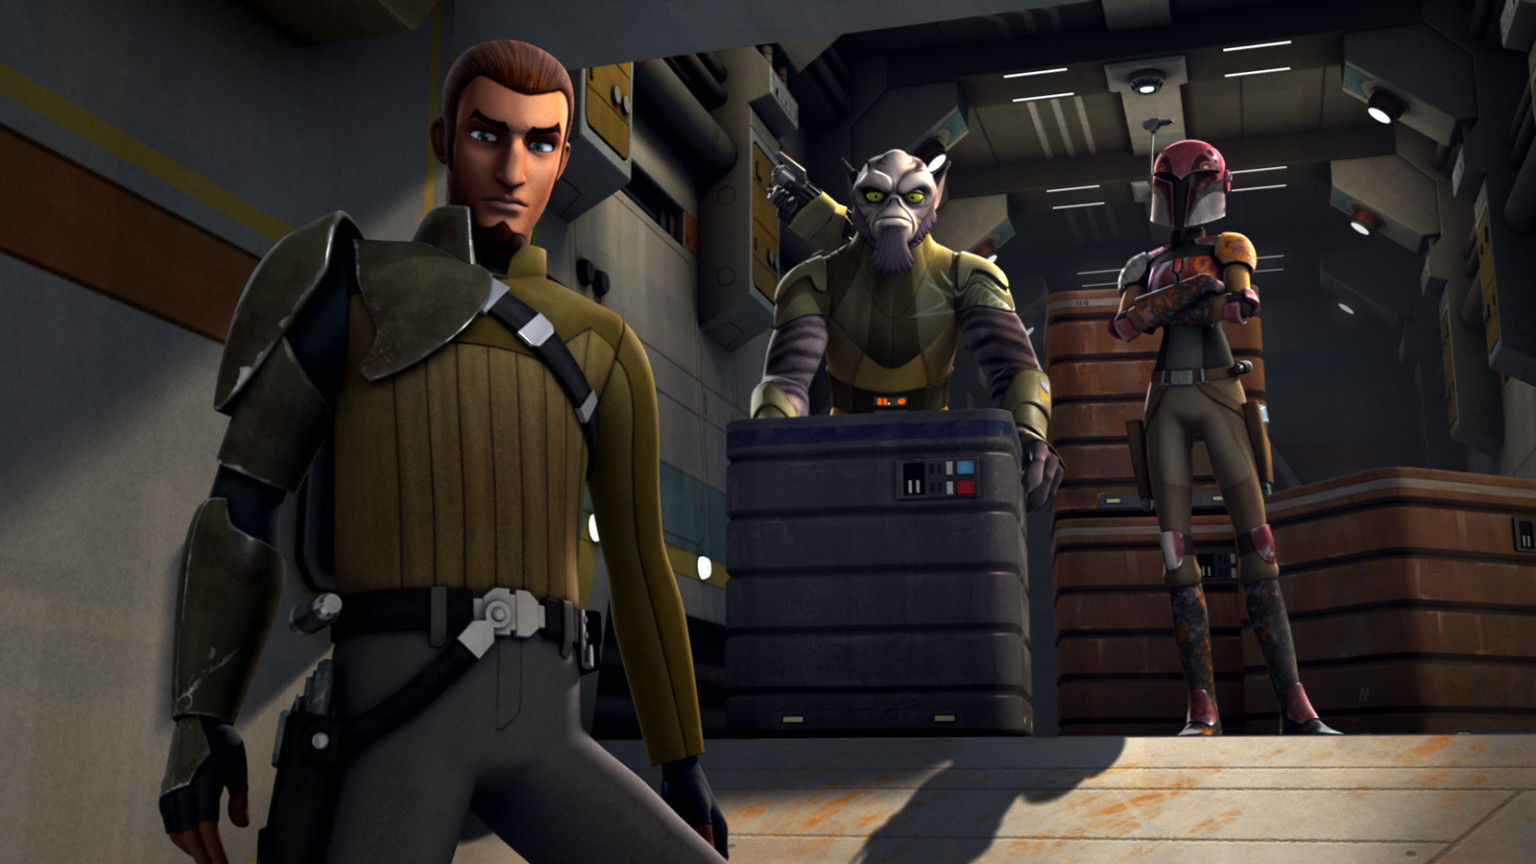 Star Wars Rebels - Kanan, Zeb, and Sabine